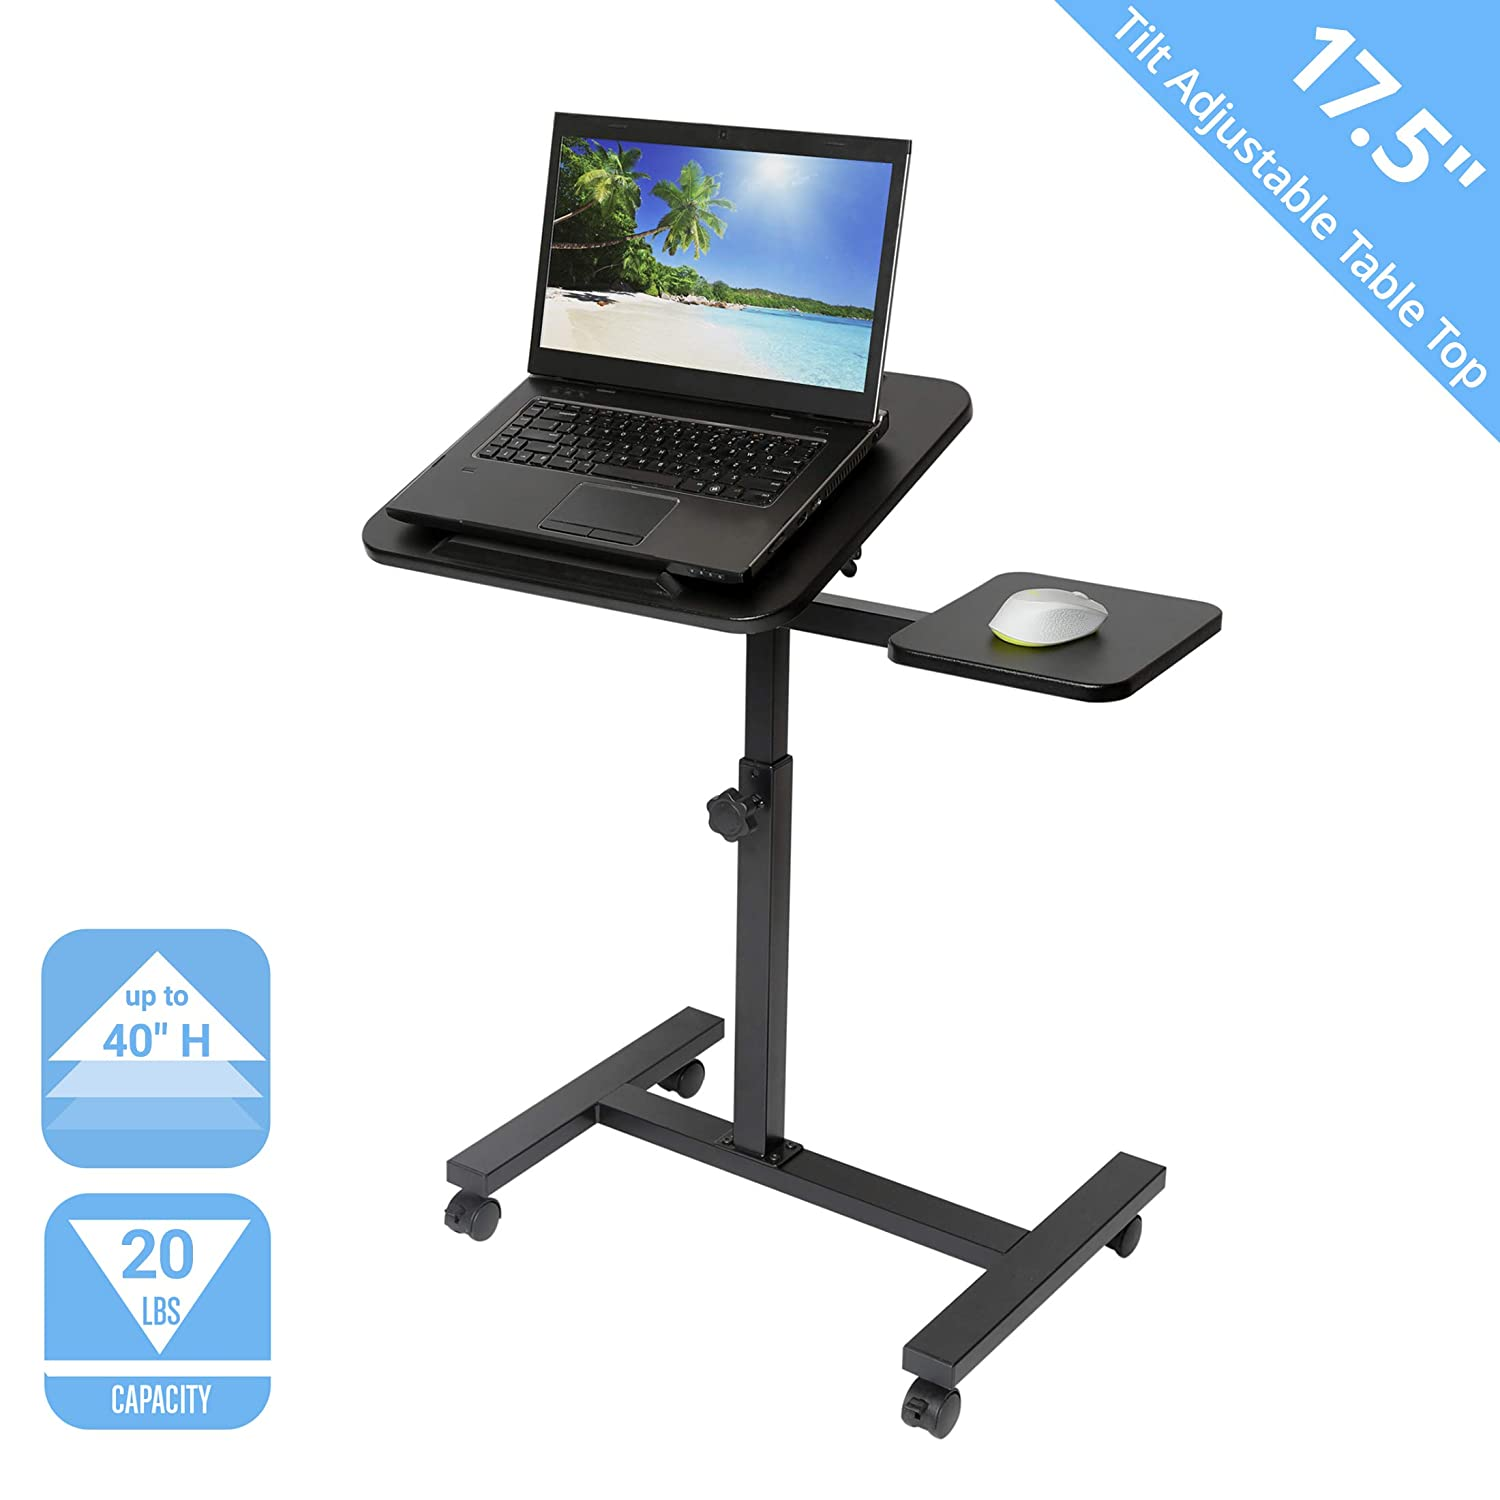 Seville Classics OFF65902 Tilting Sit-Stand Computer Desk Cart with Mouse Pad Table, Black